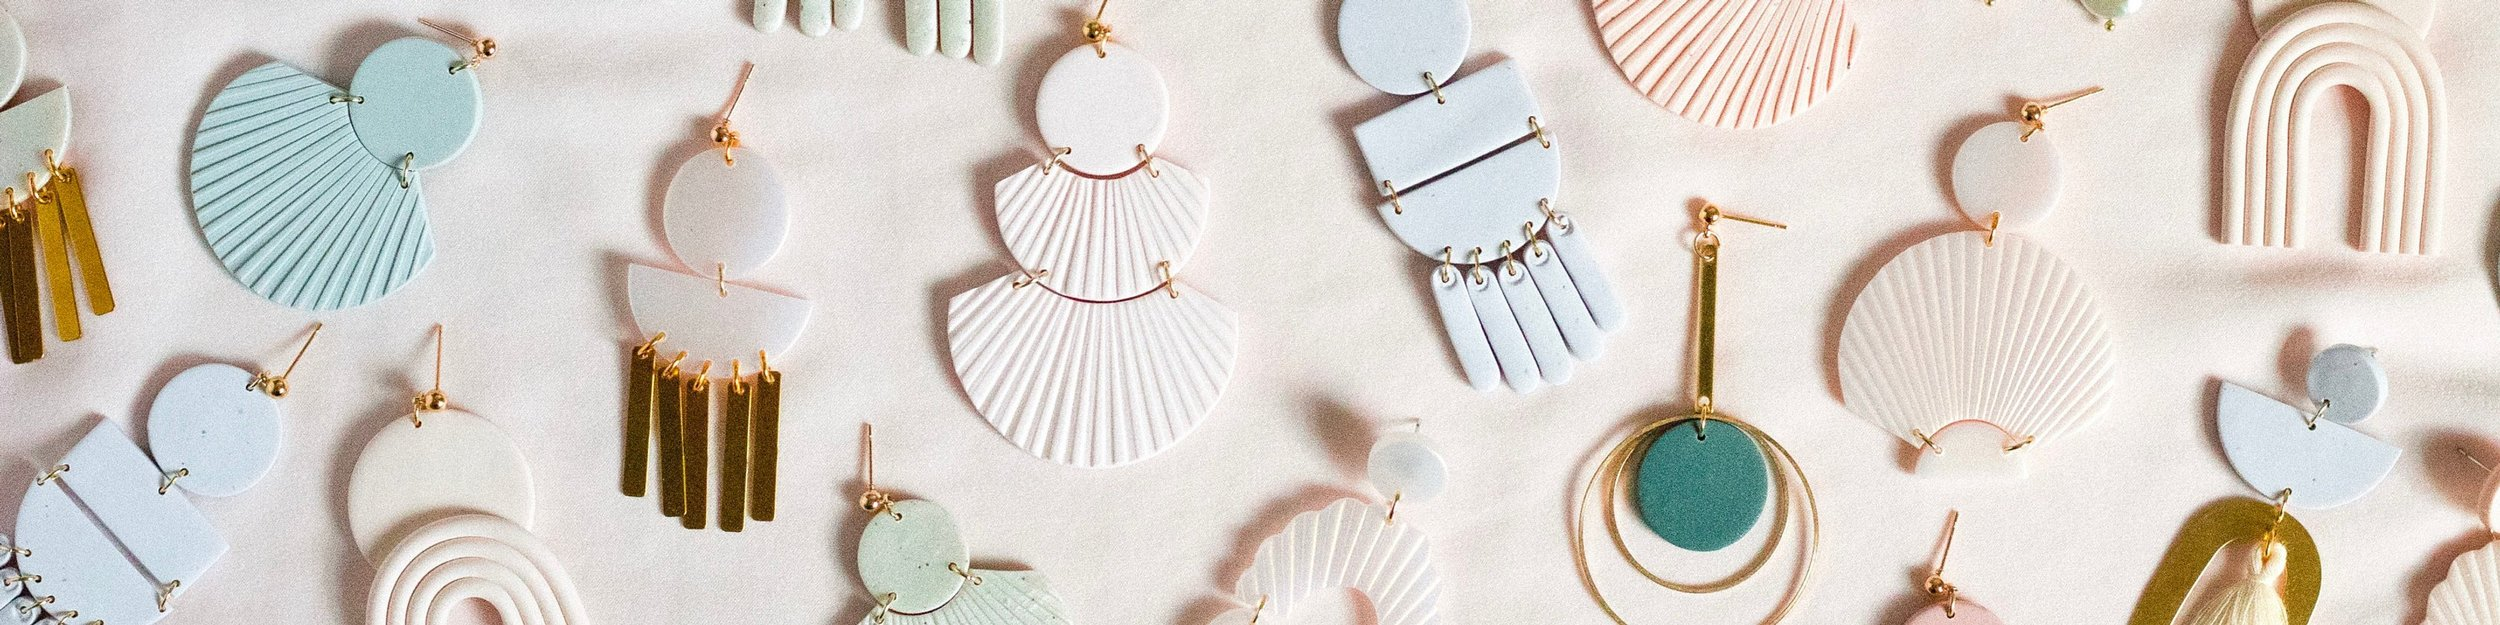 Handmade Statement Jewelry By Tidy Clutterings